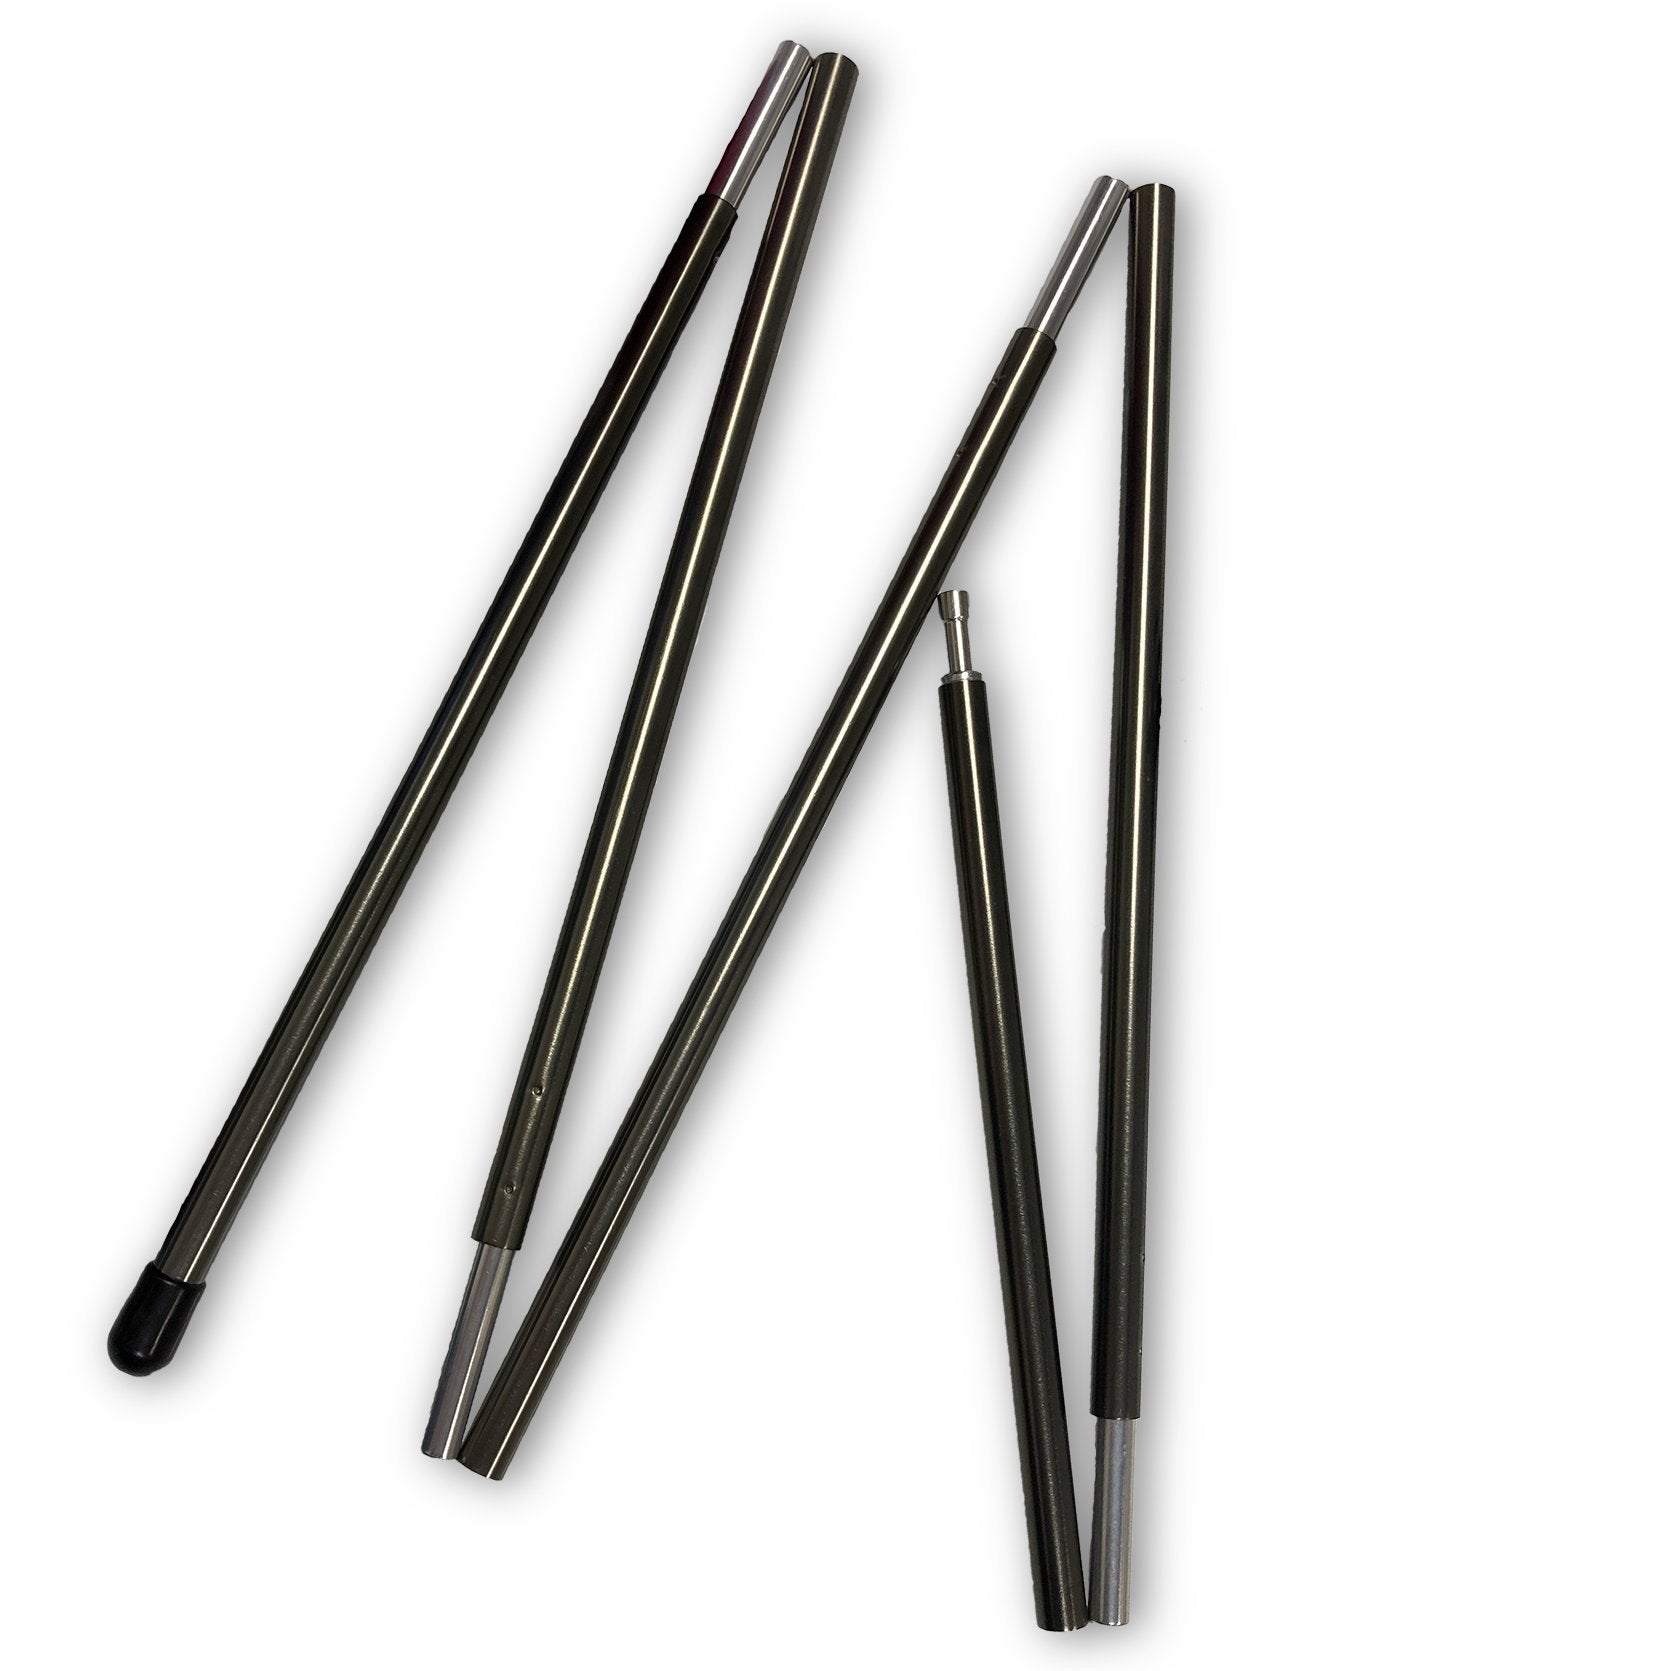 "5 Section Tent Pole - 45"" Aluminum"